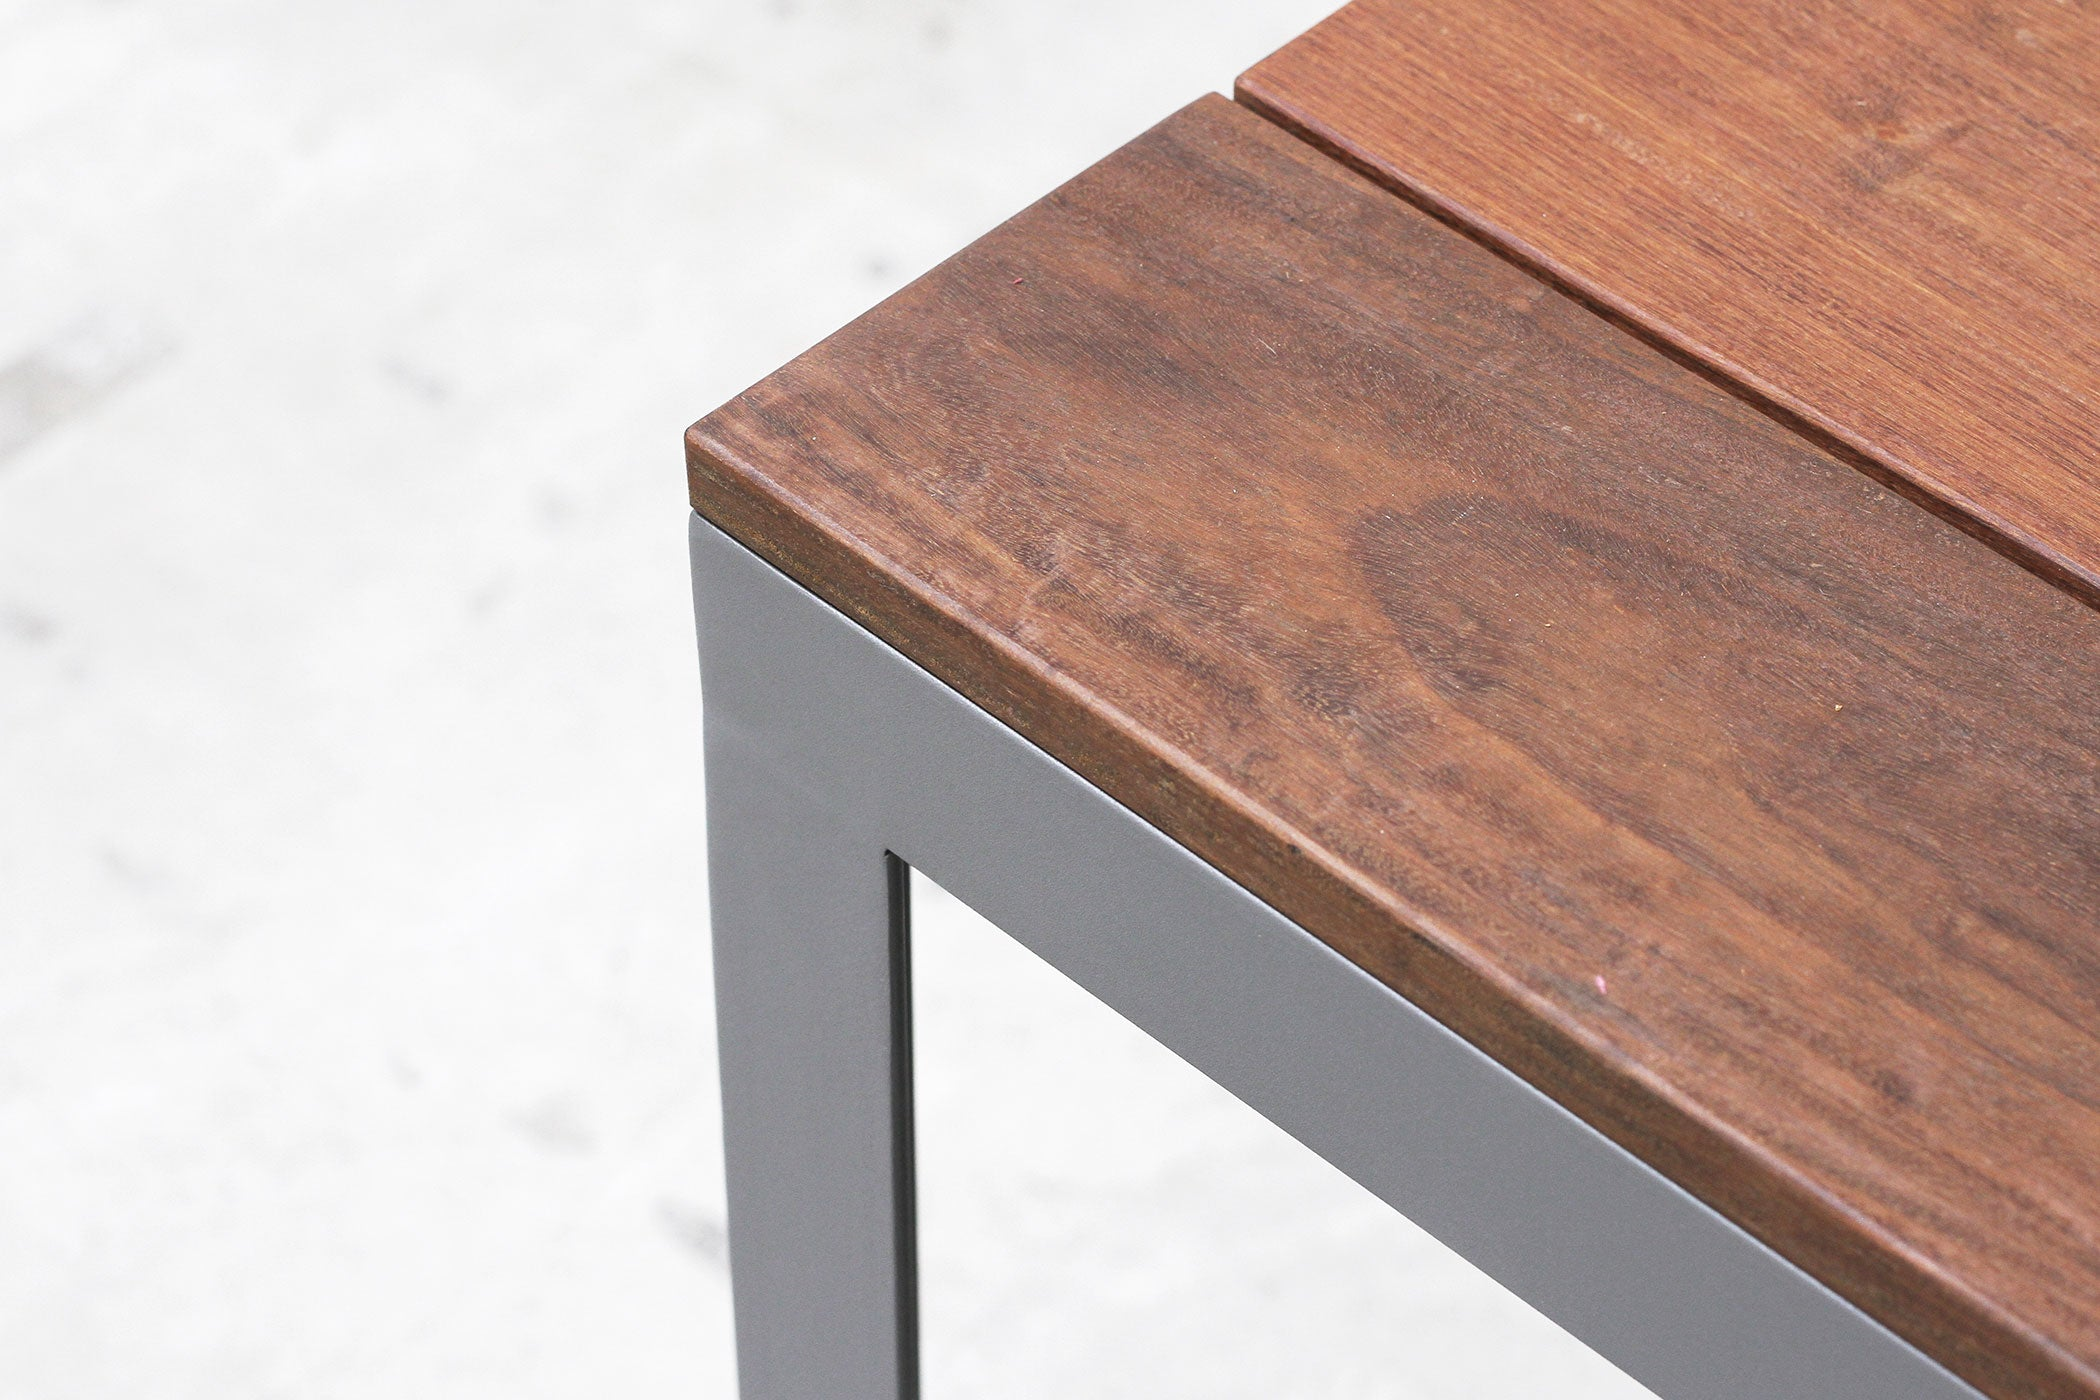 RAD Furniture's Slatted Wood Square Cafe Table - detail